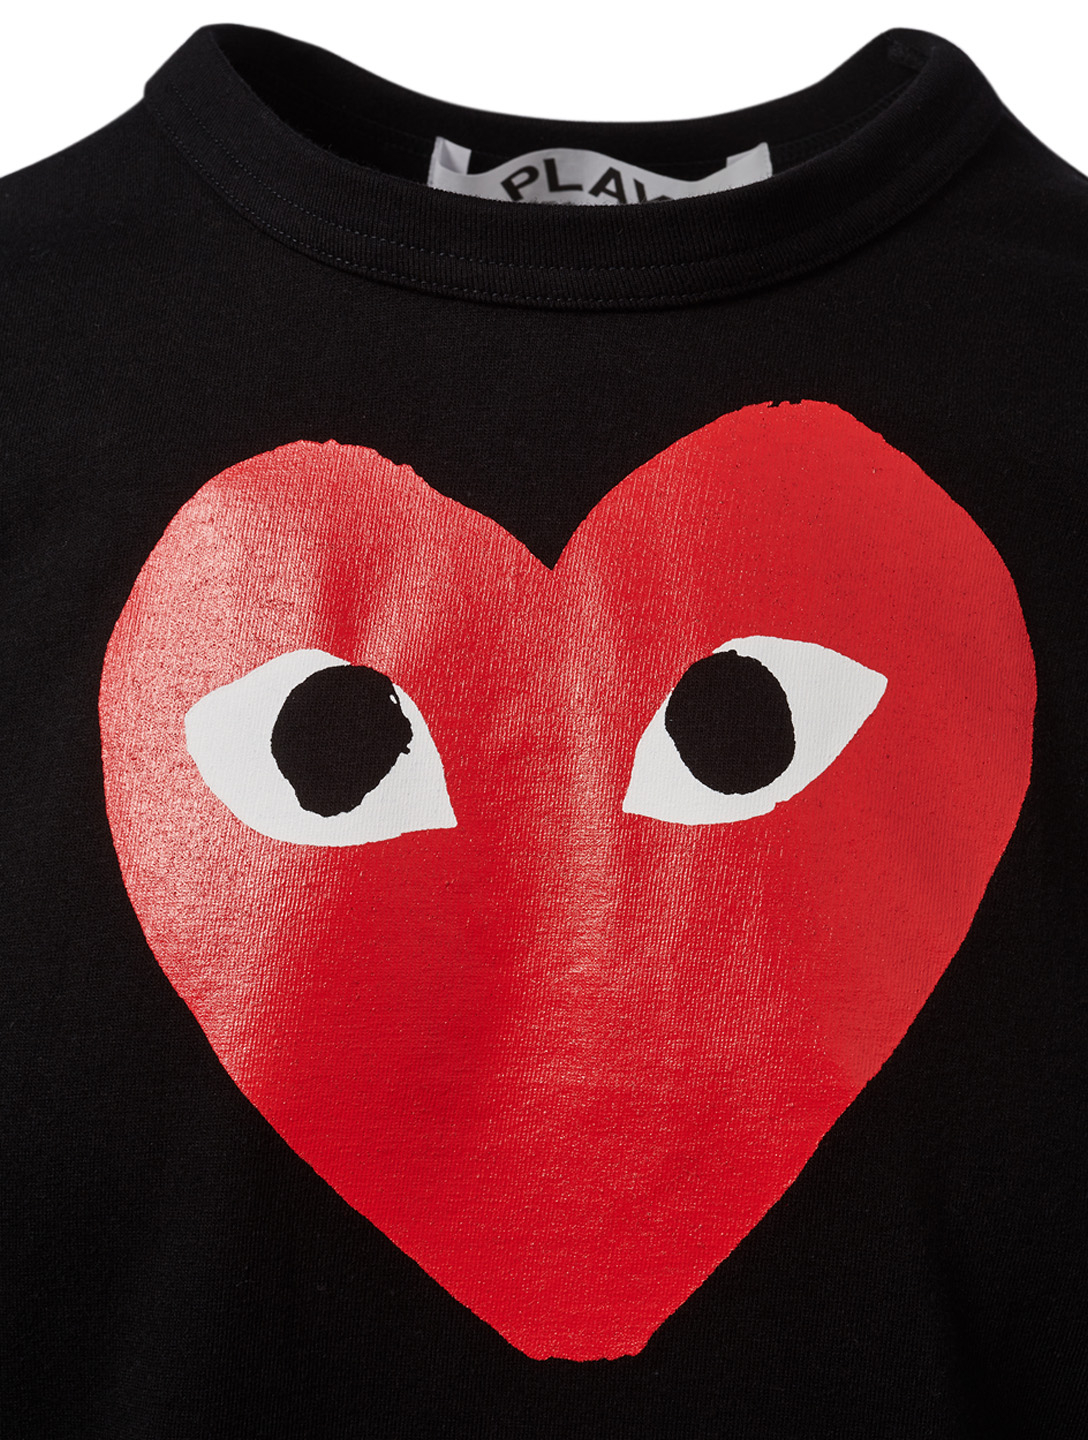 COMME DES GARÇONS PLAY Graphic Heart T-Shirt Men's Black